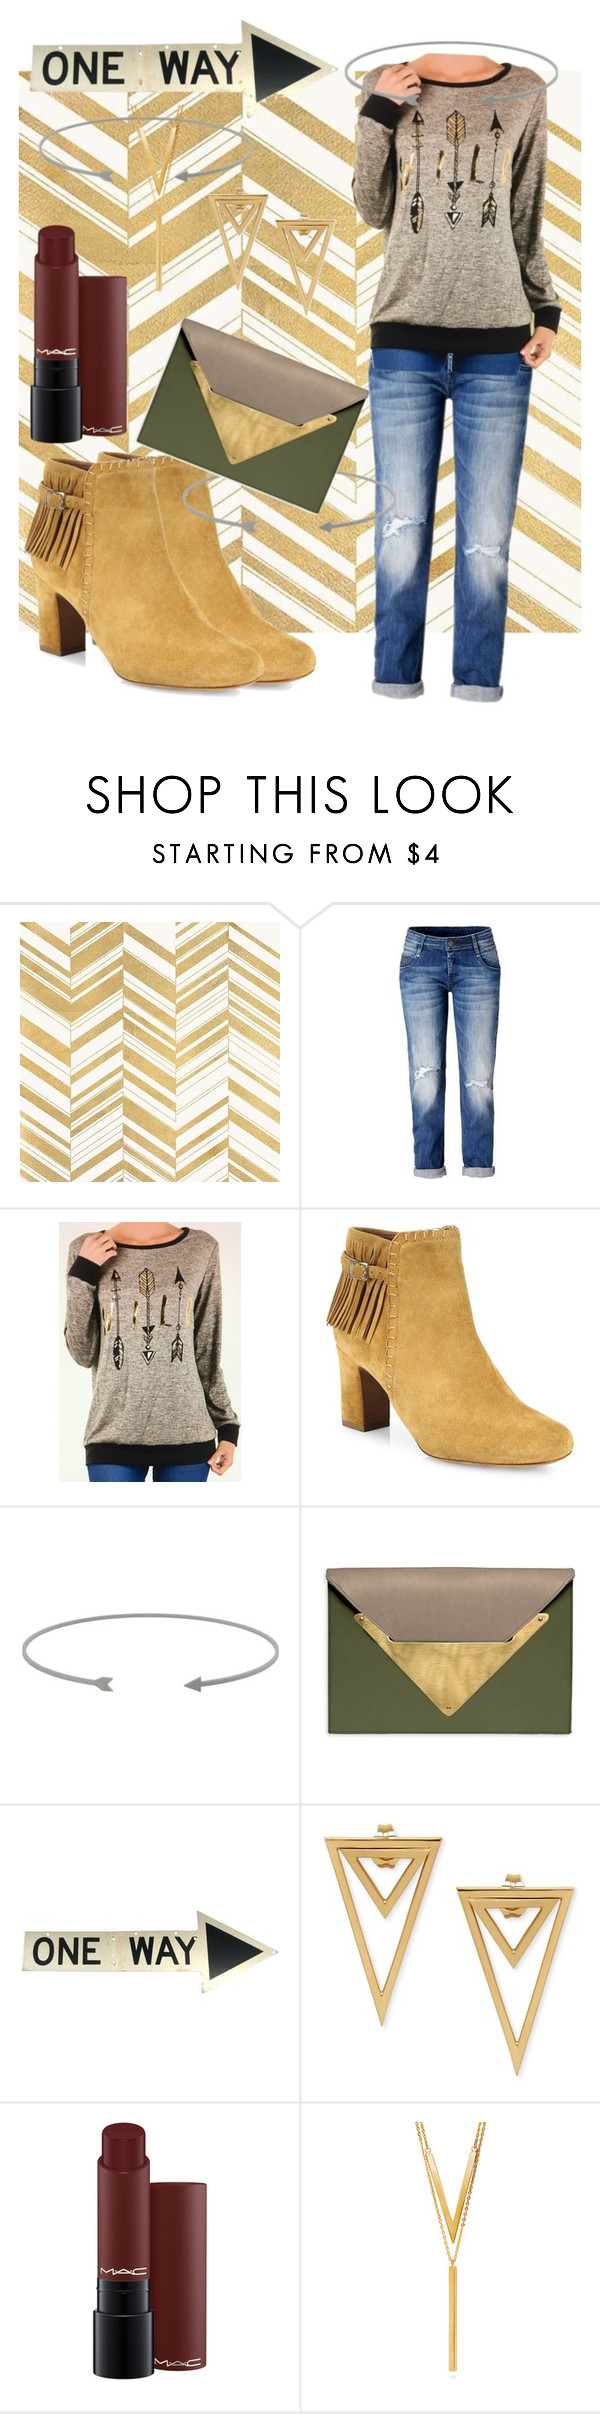 """arrow"" by i-rusche on Polyvore featuring Home Decorators Collection, Tabitha Simmons, Dareen Hakim and BERRICLE"